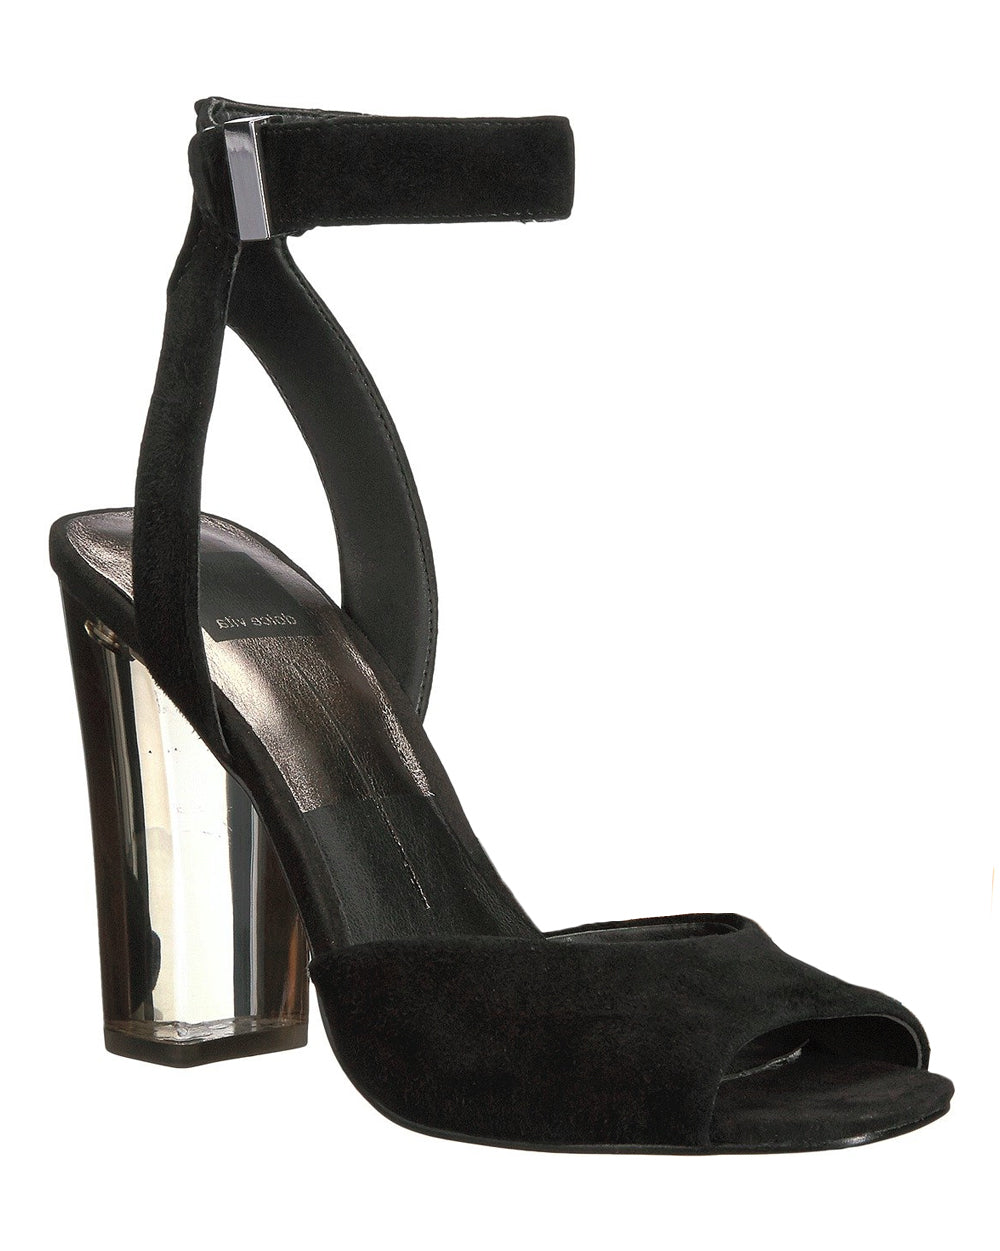 And Suede Vita Hades Lucite Shopping Sandals Dolce Bag Heel High The lKJc13TuF